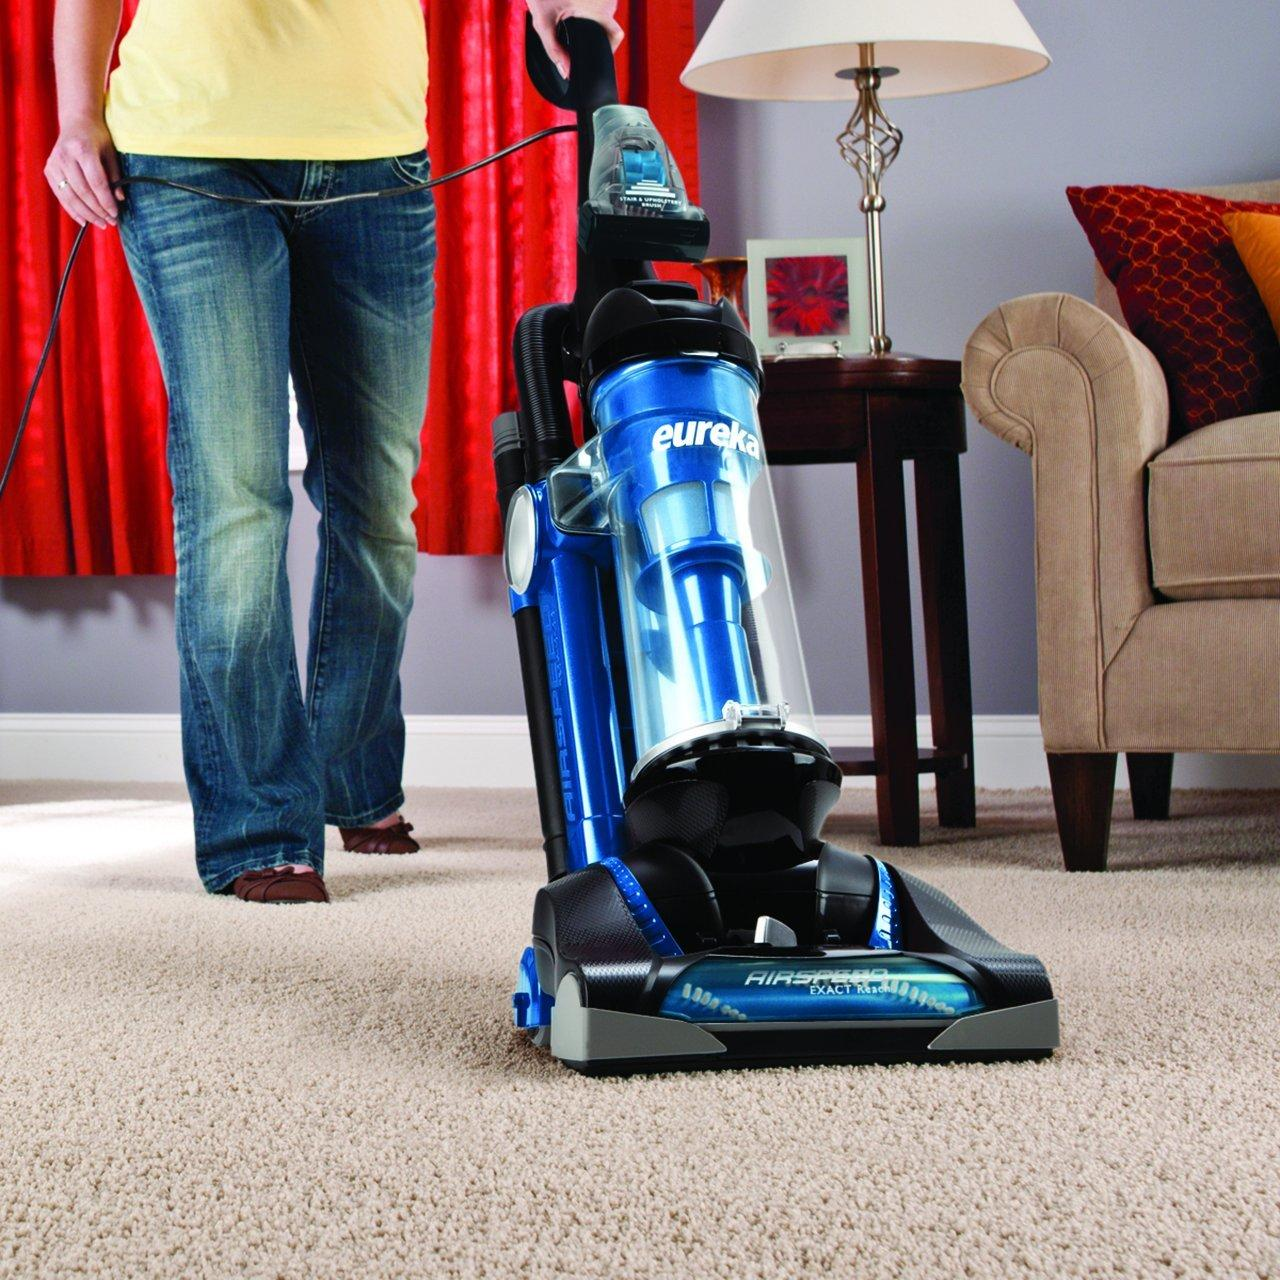 Eureka AS3008A Airspeed Exact Reach Bagless Upright Vacuum